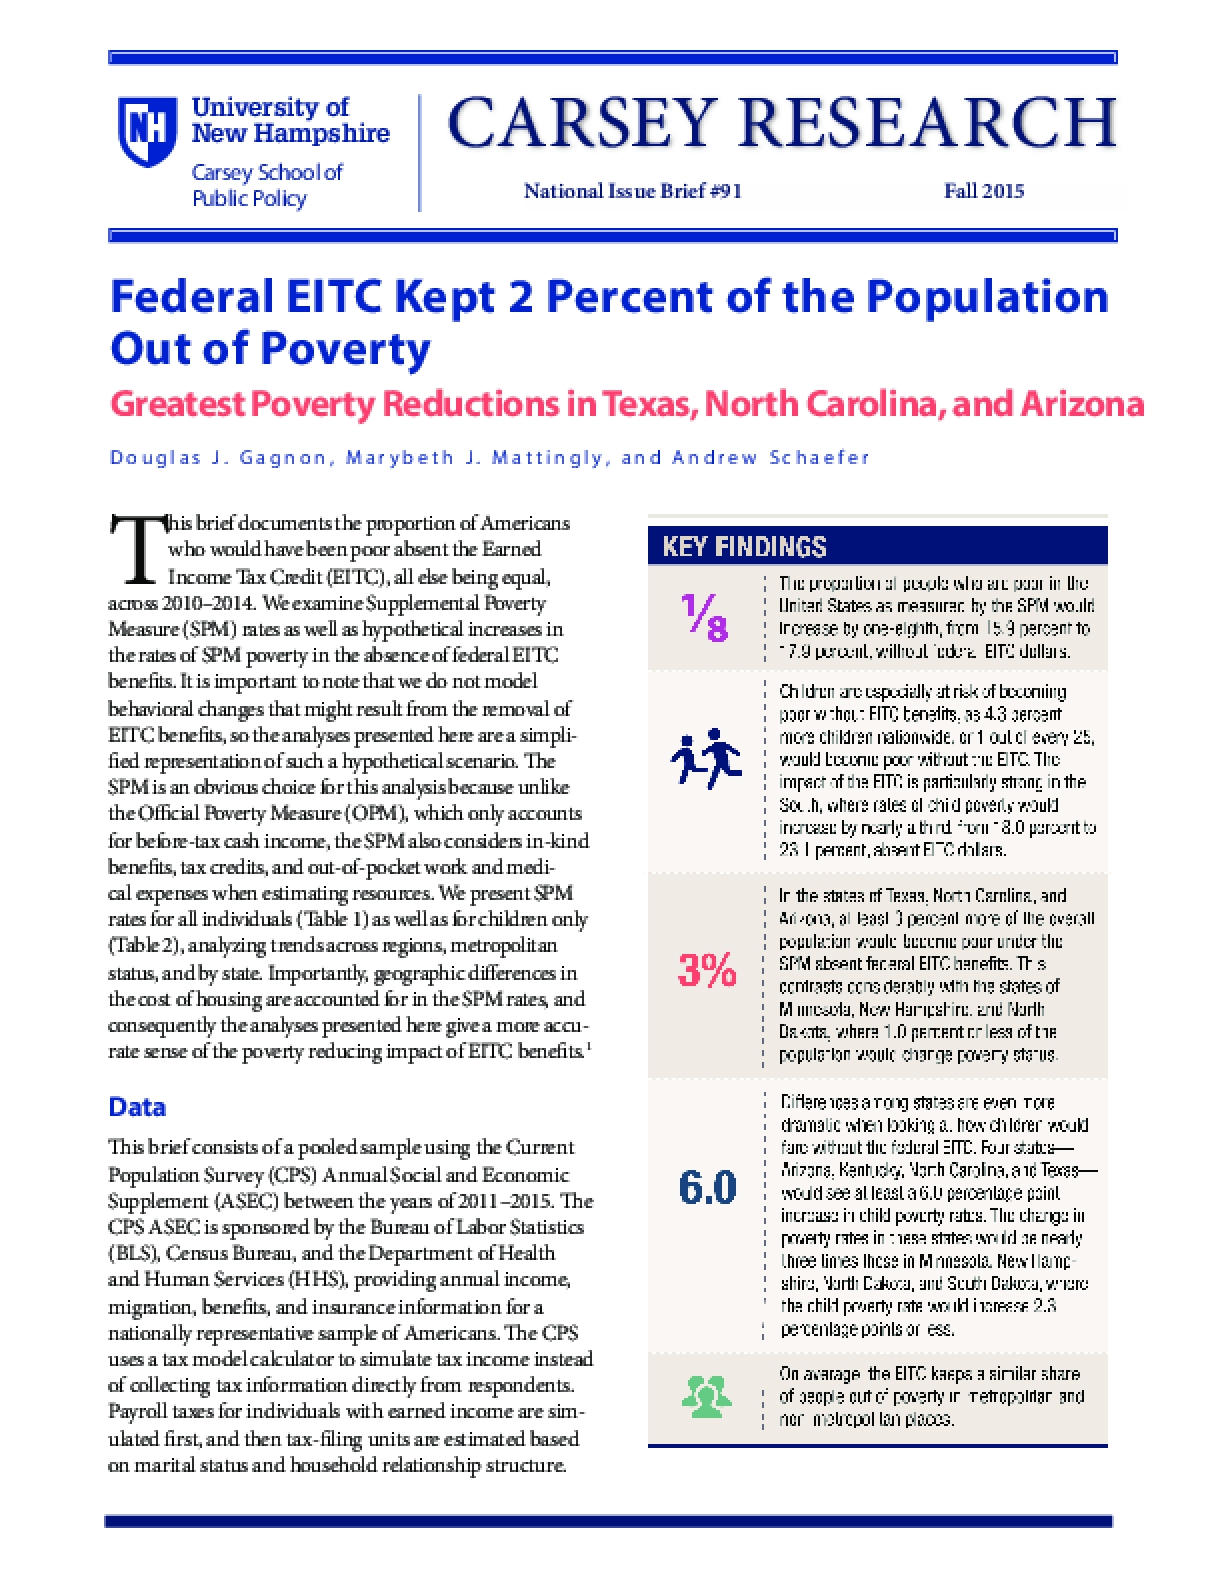 Federal EITC Kept 2 Percent of the Population Out of Poverty